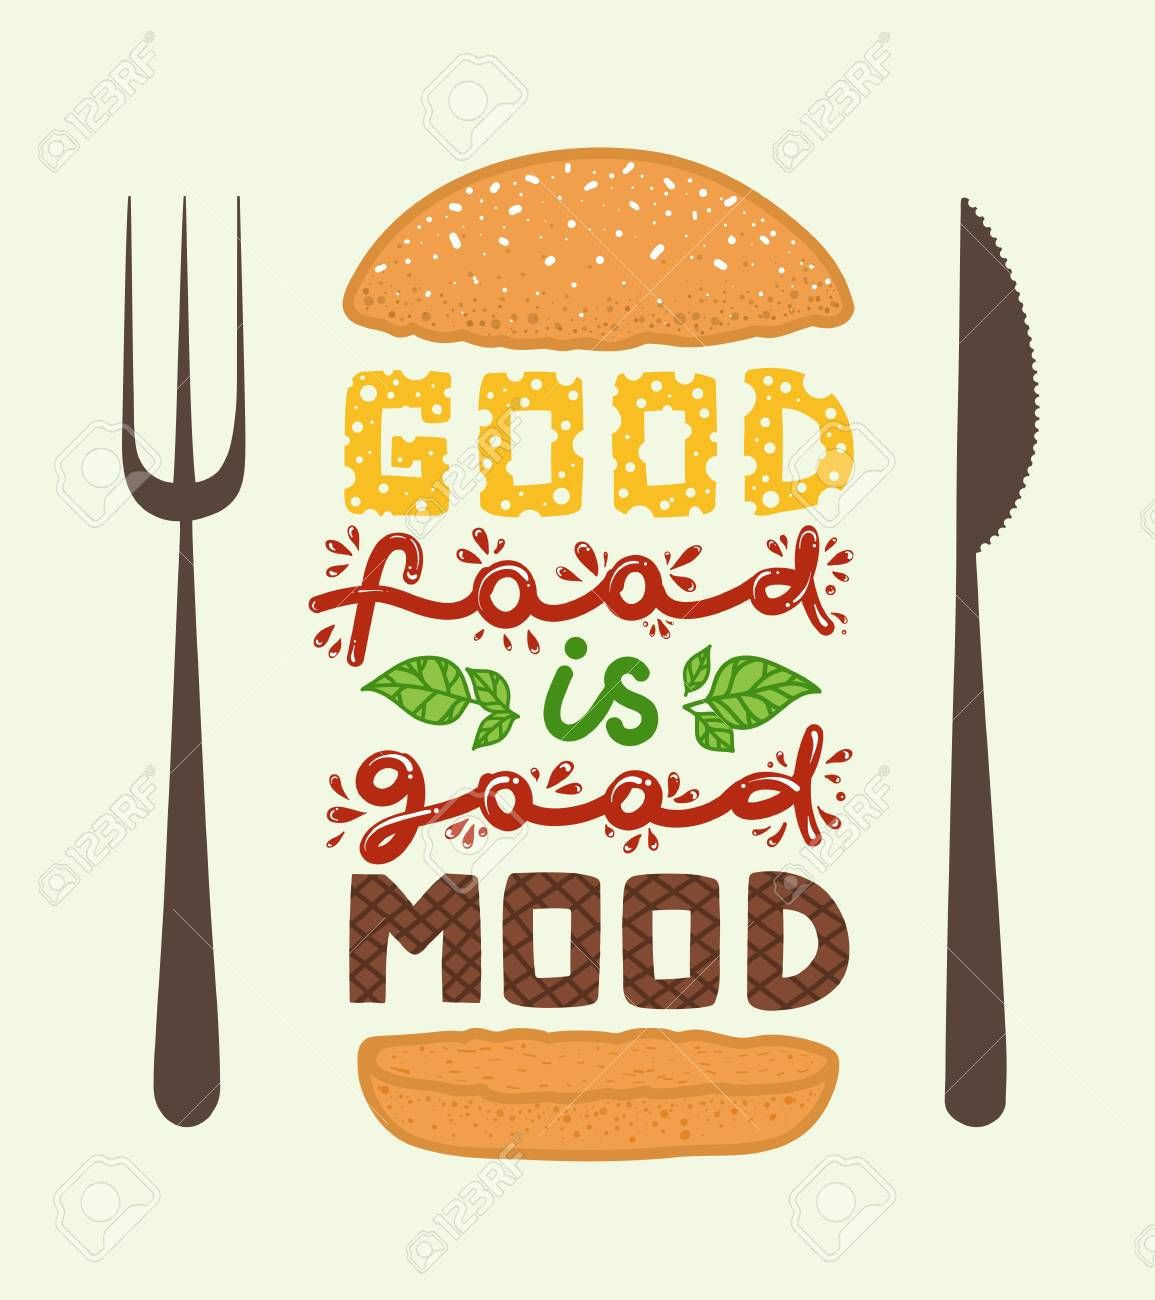 Conceptual Art Of Burger Quotes Good Food Is Good Mood Vector Food Quotes Food Quote Posters